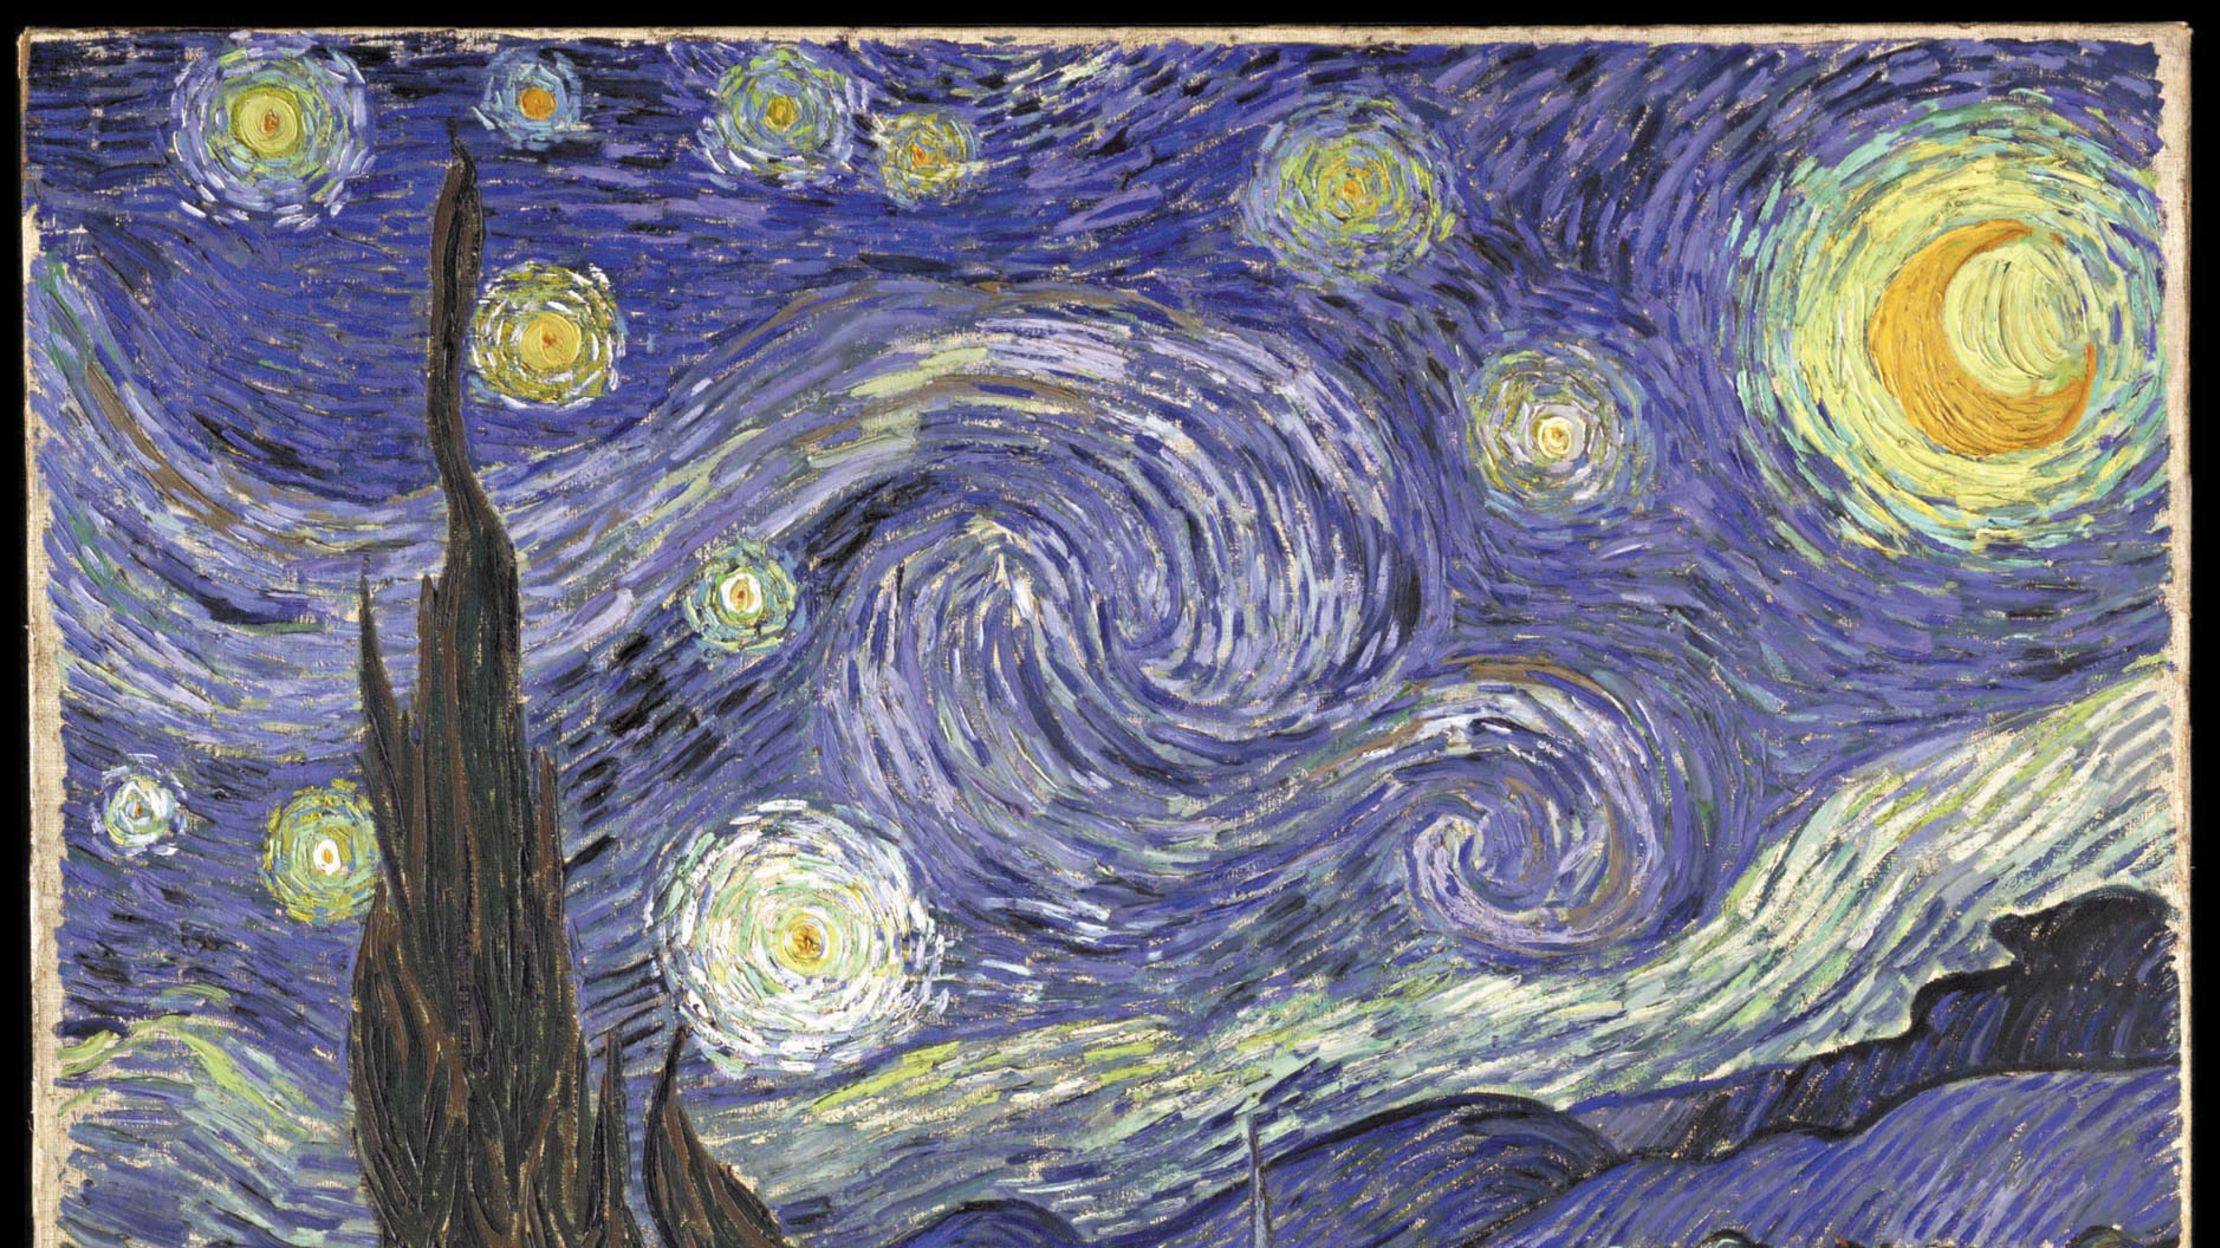 11 Things You Didn't Know About 'The Starry Night' | Mental Floss